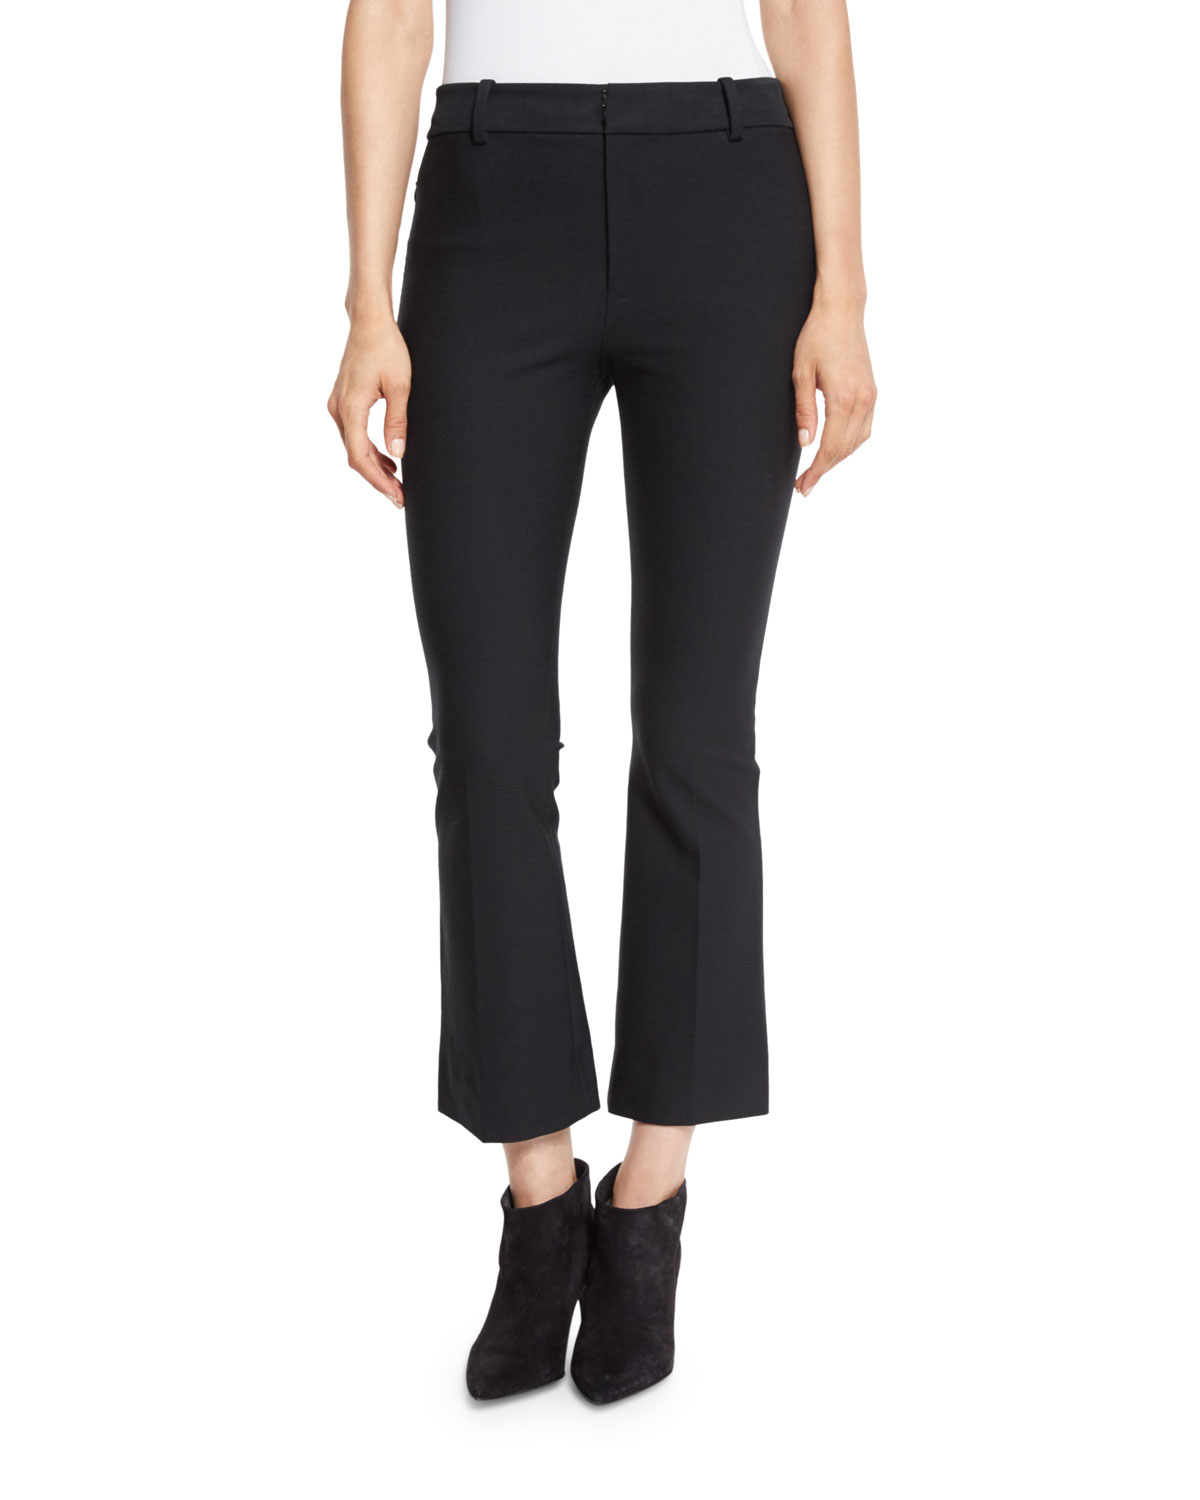 Cropped Flare Stretch Trousers, Black